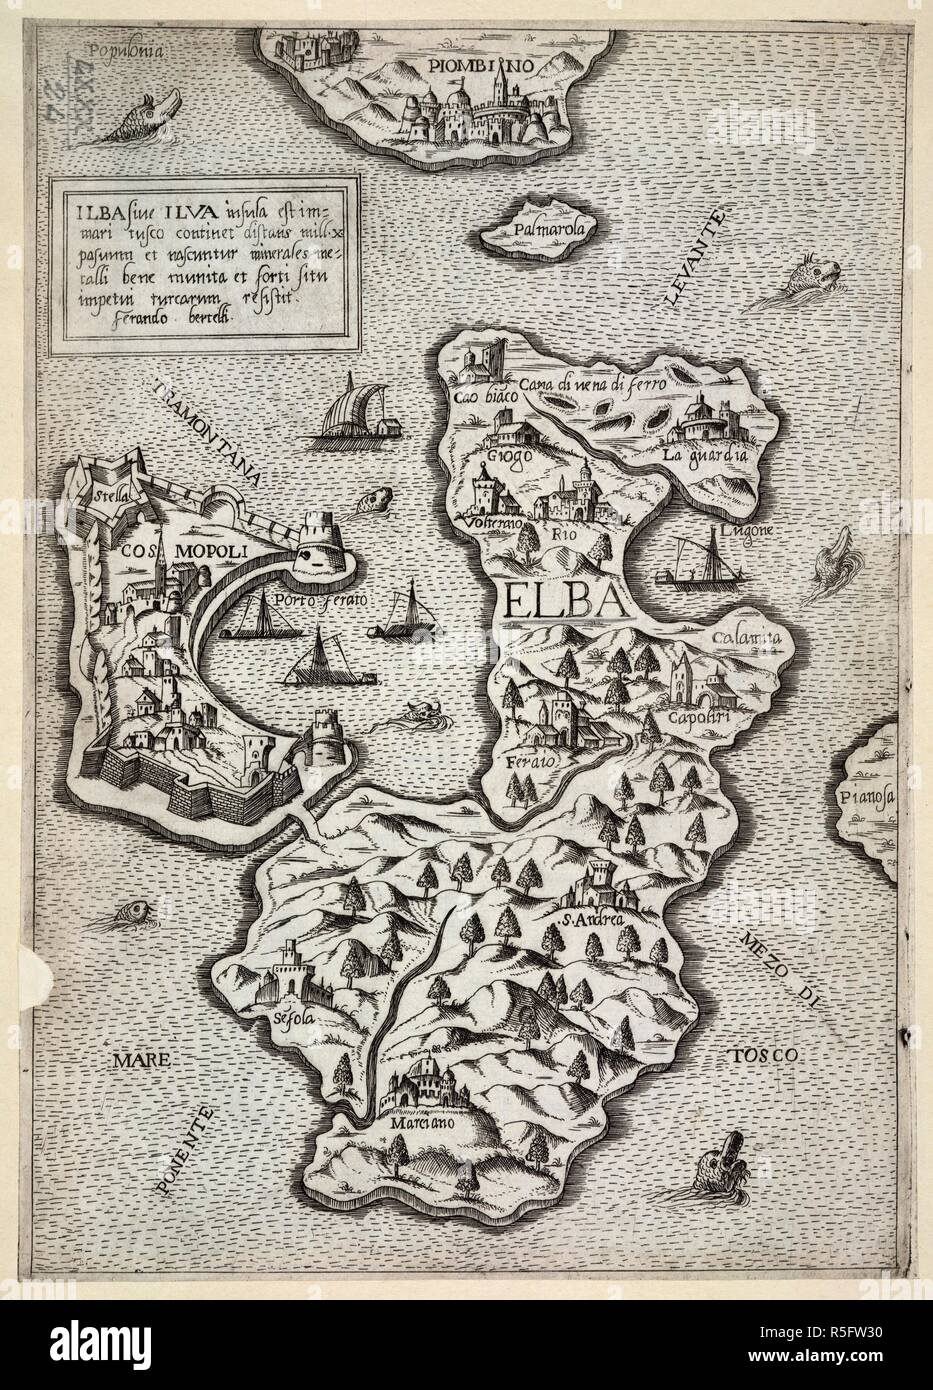 Ilba, sive Ilva Insula. [By] F. Bertelli.. Venetiis, 1568. Map of the isle  of Elba. Image taken from Ilba, sive Ilva Insula. [By] F. Bertelli.